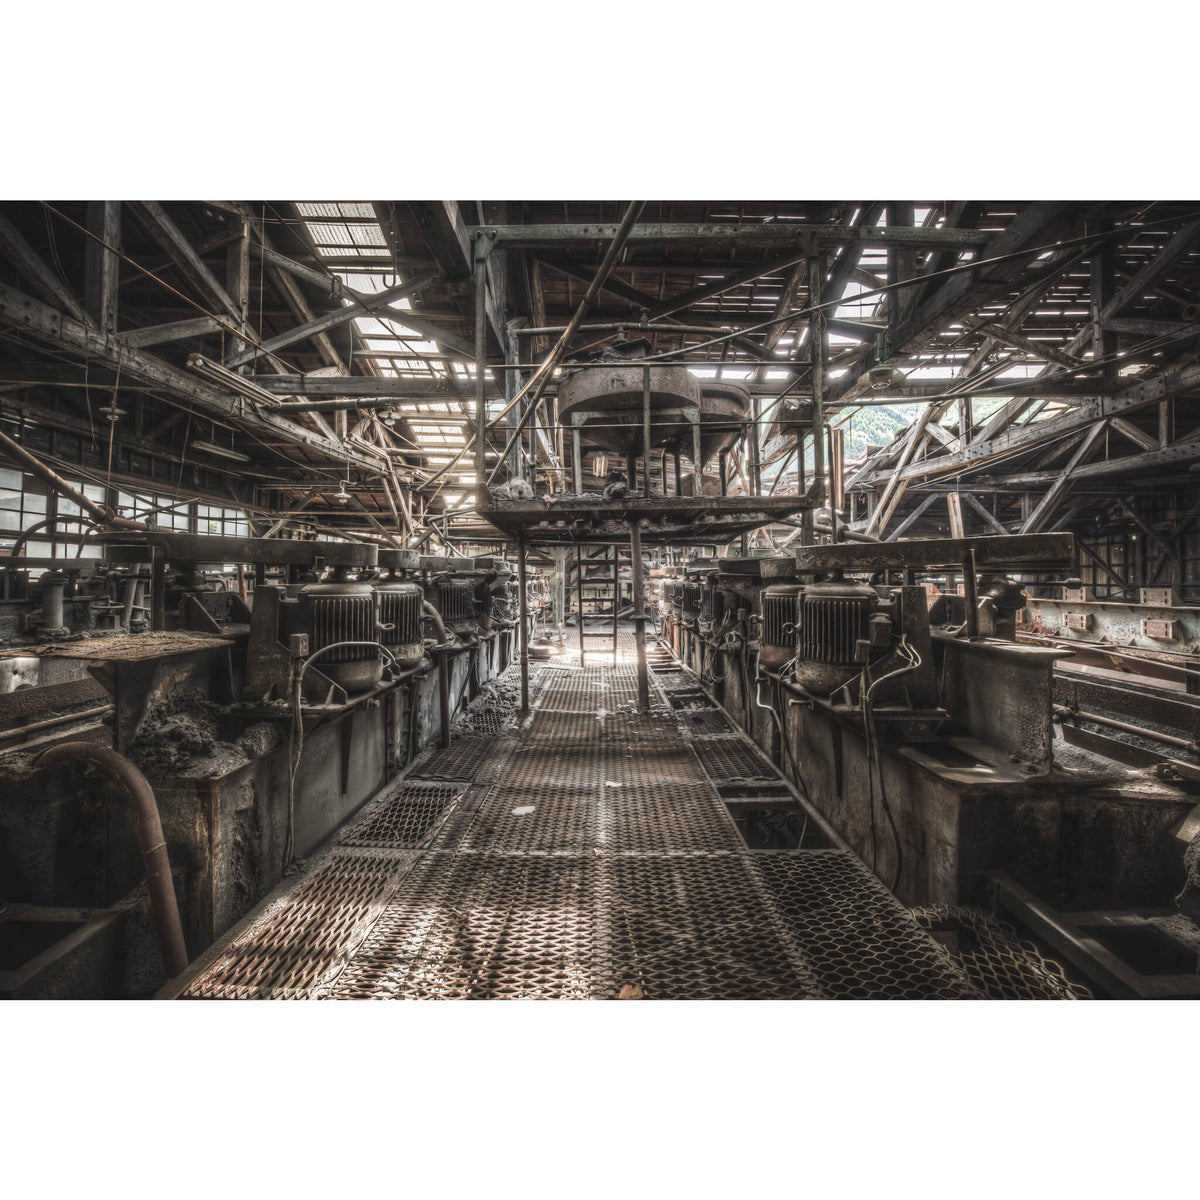 Cleaning Flotation | Ashio Copper Mine Fine Art Print - Lost Collective Shop